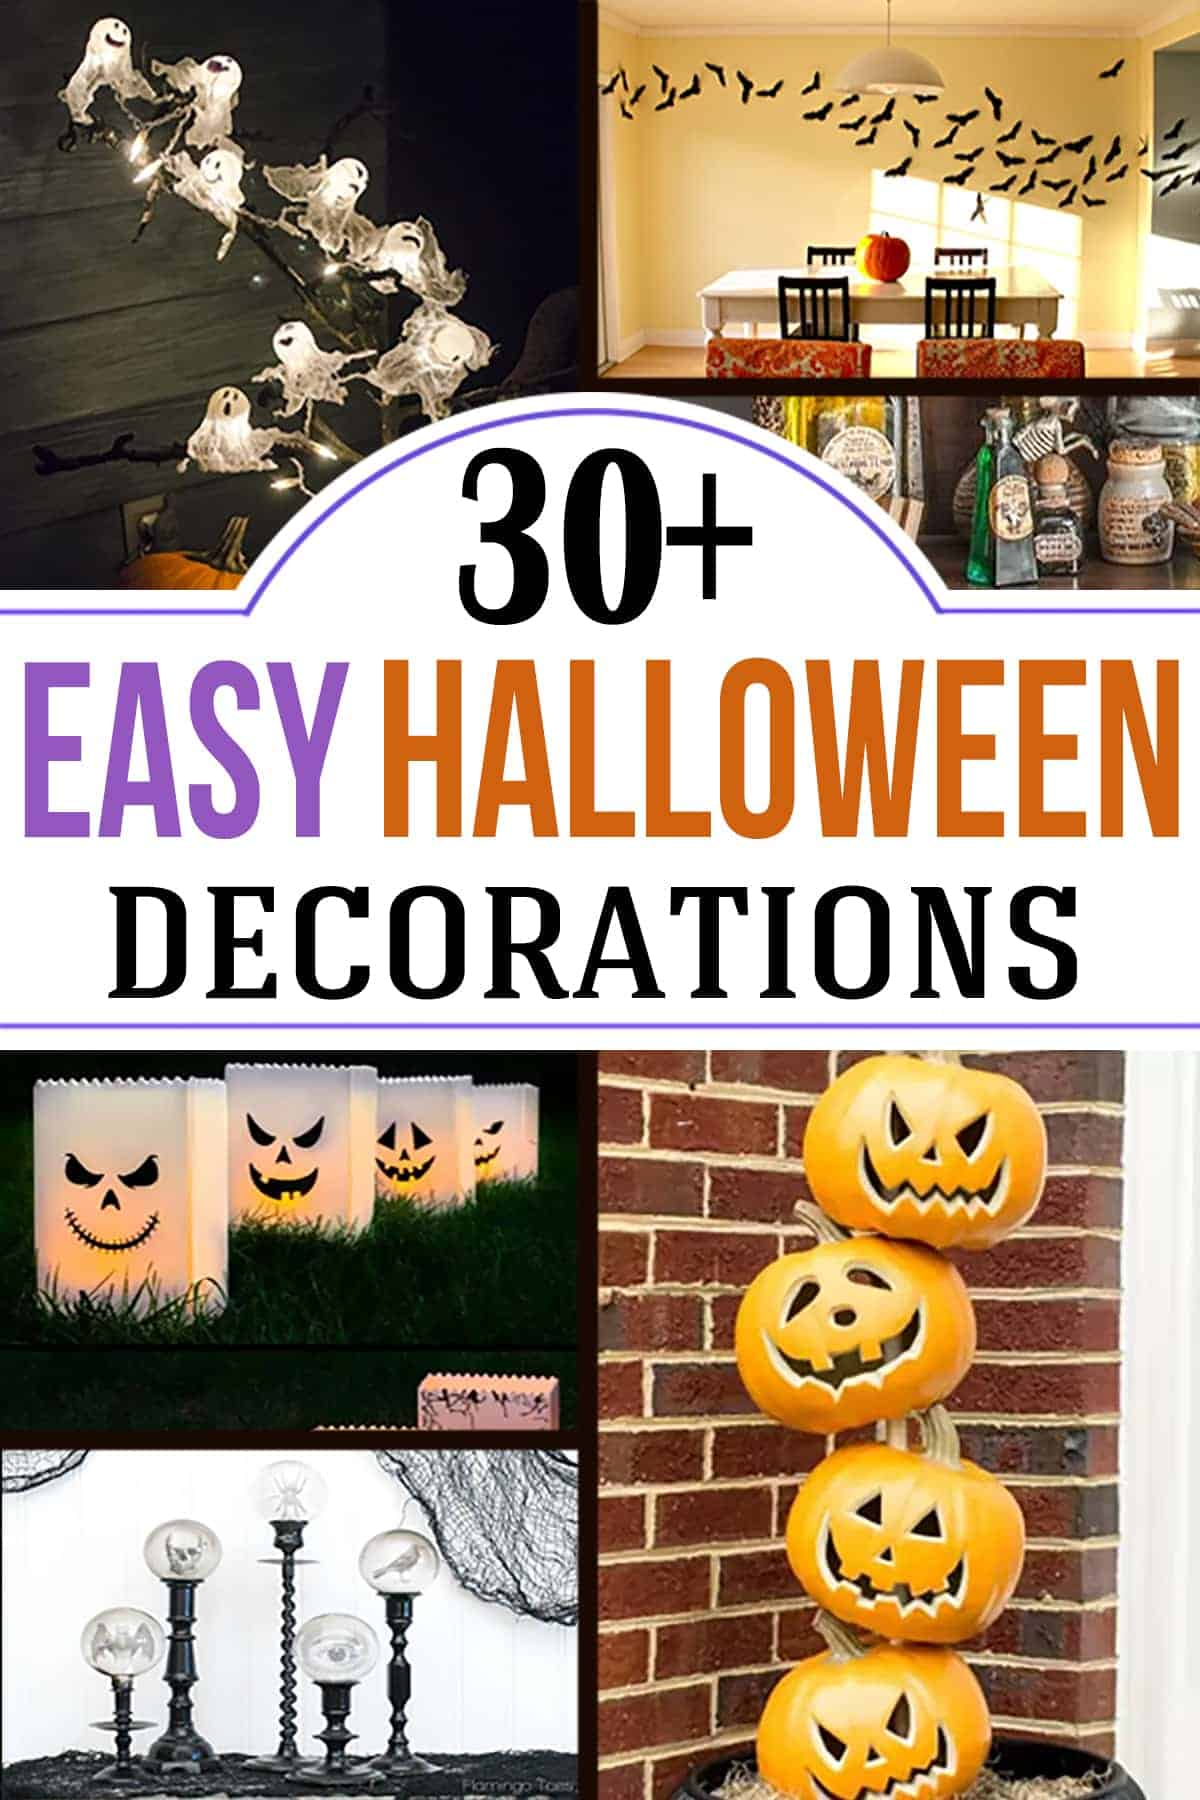 Collage of easy DIY Halloween decorations including ghosts, bats, pumpkins, and lanterns with post title overlay.